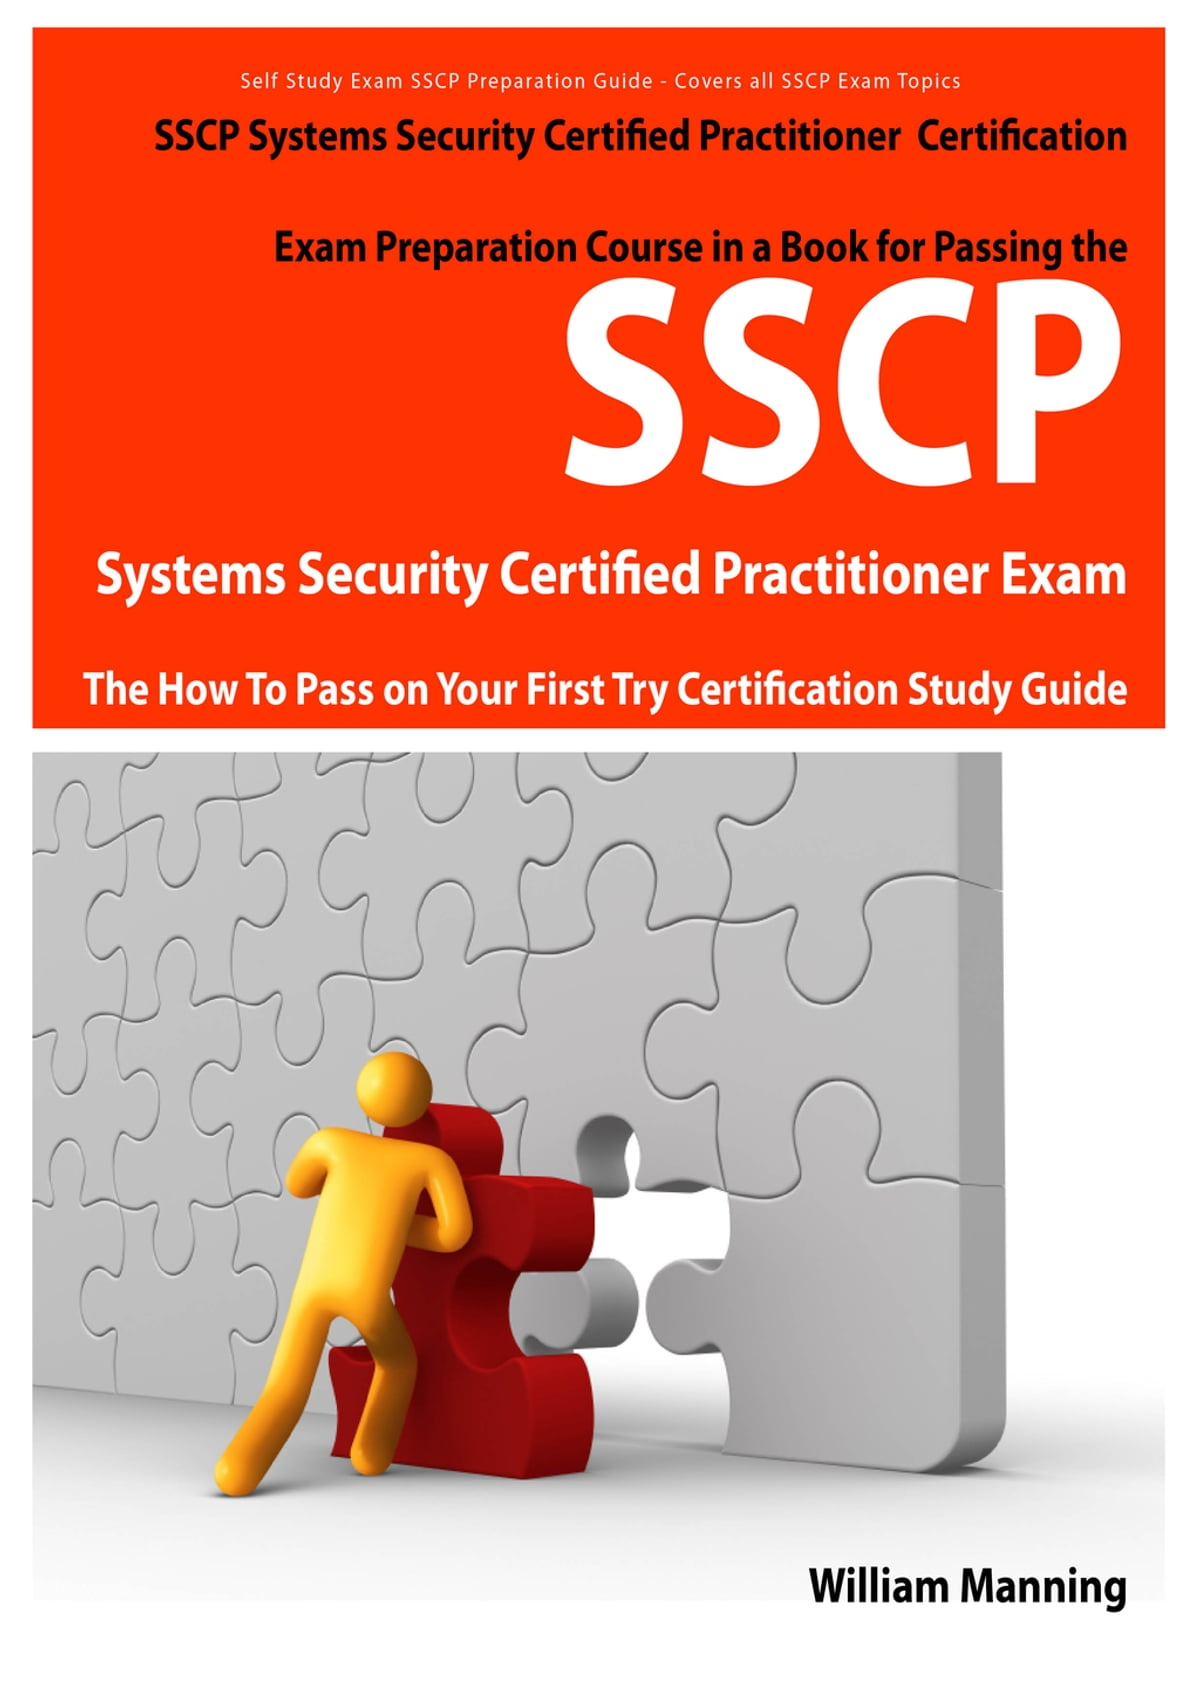 Sscp systems security certified certification exam preparation sscp systems security certified certification exam preparation course in a book for passing the sscp systems security certified exam the how to pass on 1betcityfo Gallery